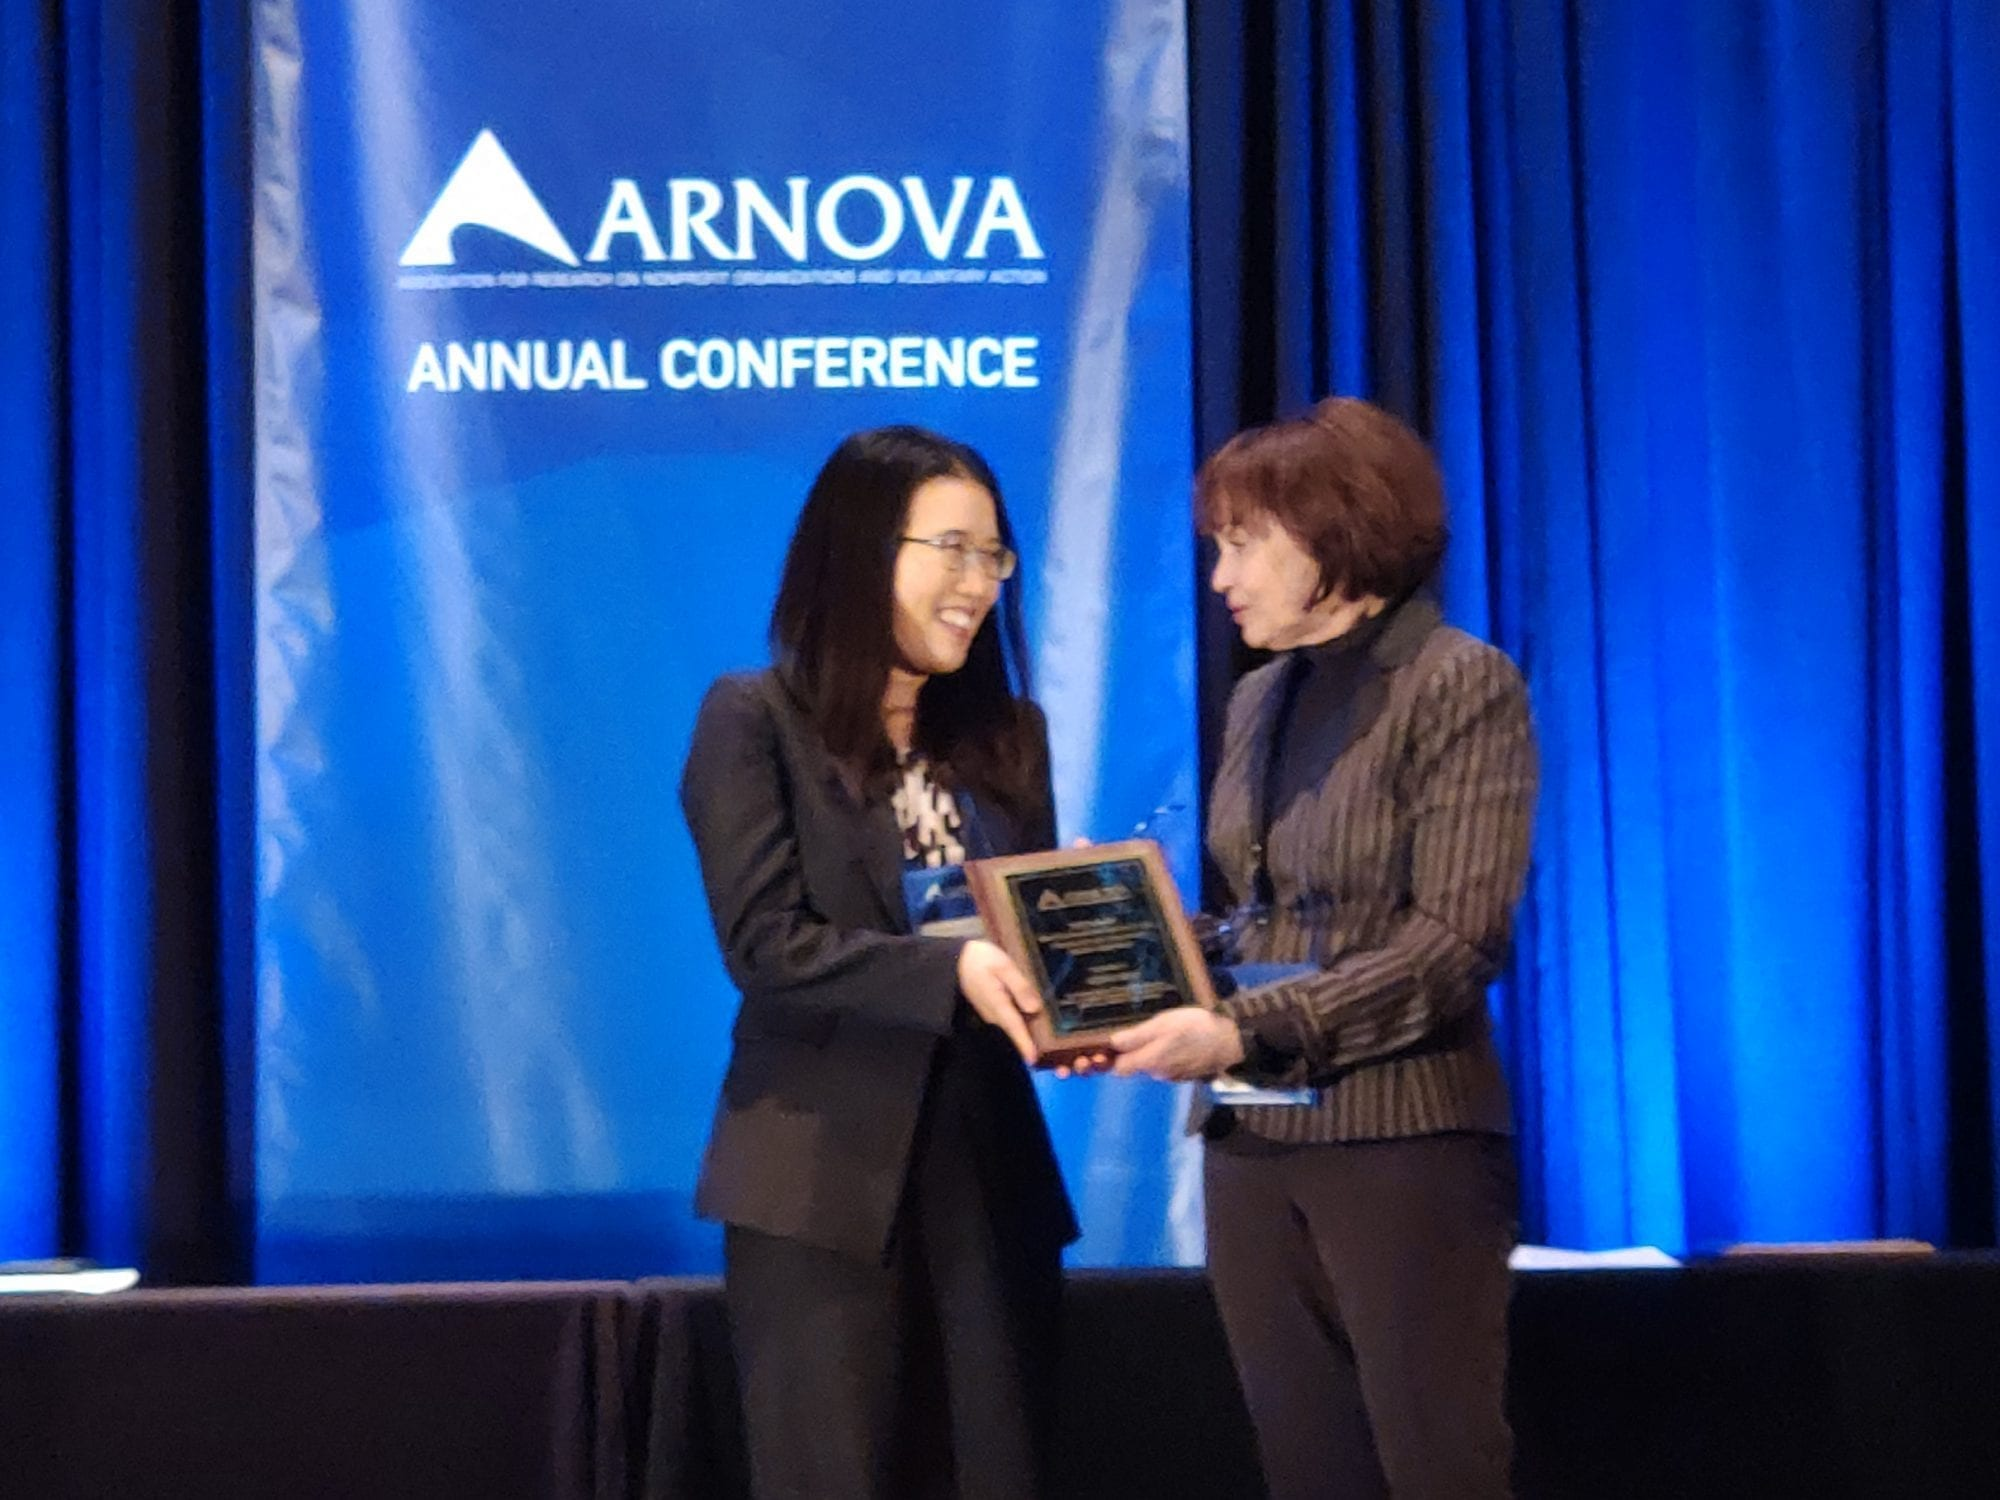 Mirae Kim receiving the Arnova award for Outstanding Nonprofit Research Article of the Year